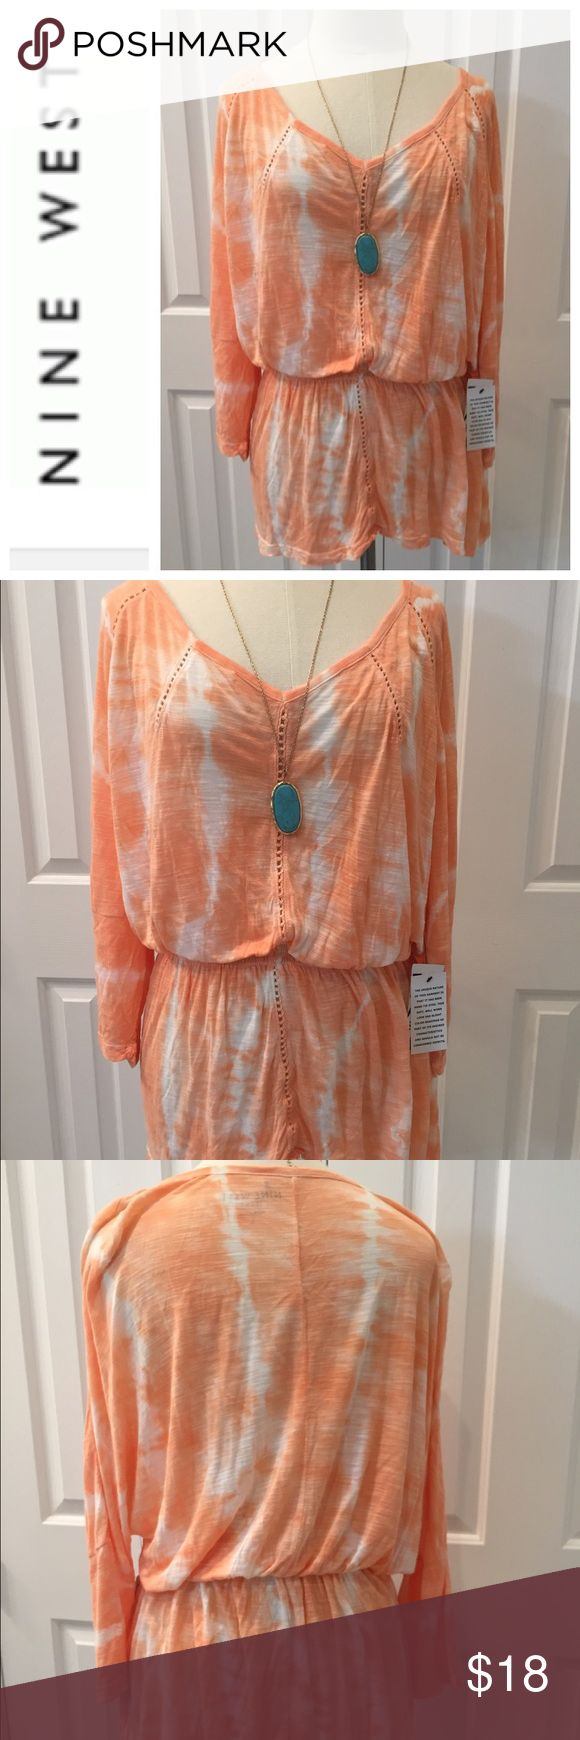 NWT Nine West Orange Tye Dye Blouse Large Fun and flirty New with tags Nine West comfy rayon top. 3/4 length sleeves . Rayon . Elastic waist. Check out my closet to save on bundles. Reasonable offers accepted. Nine West Tops Blouses